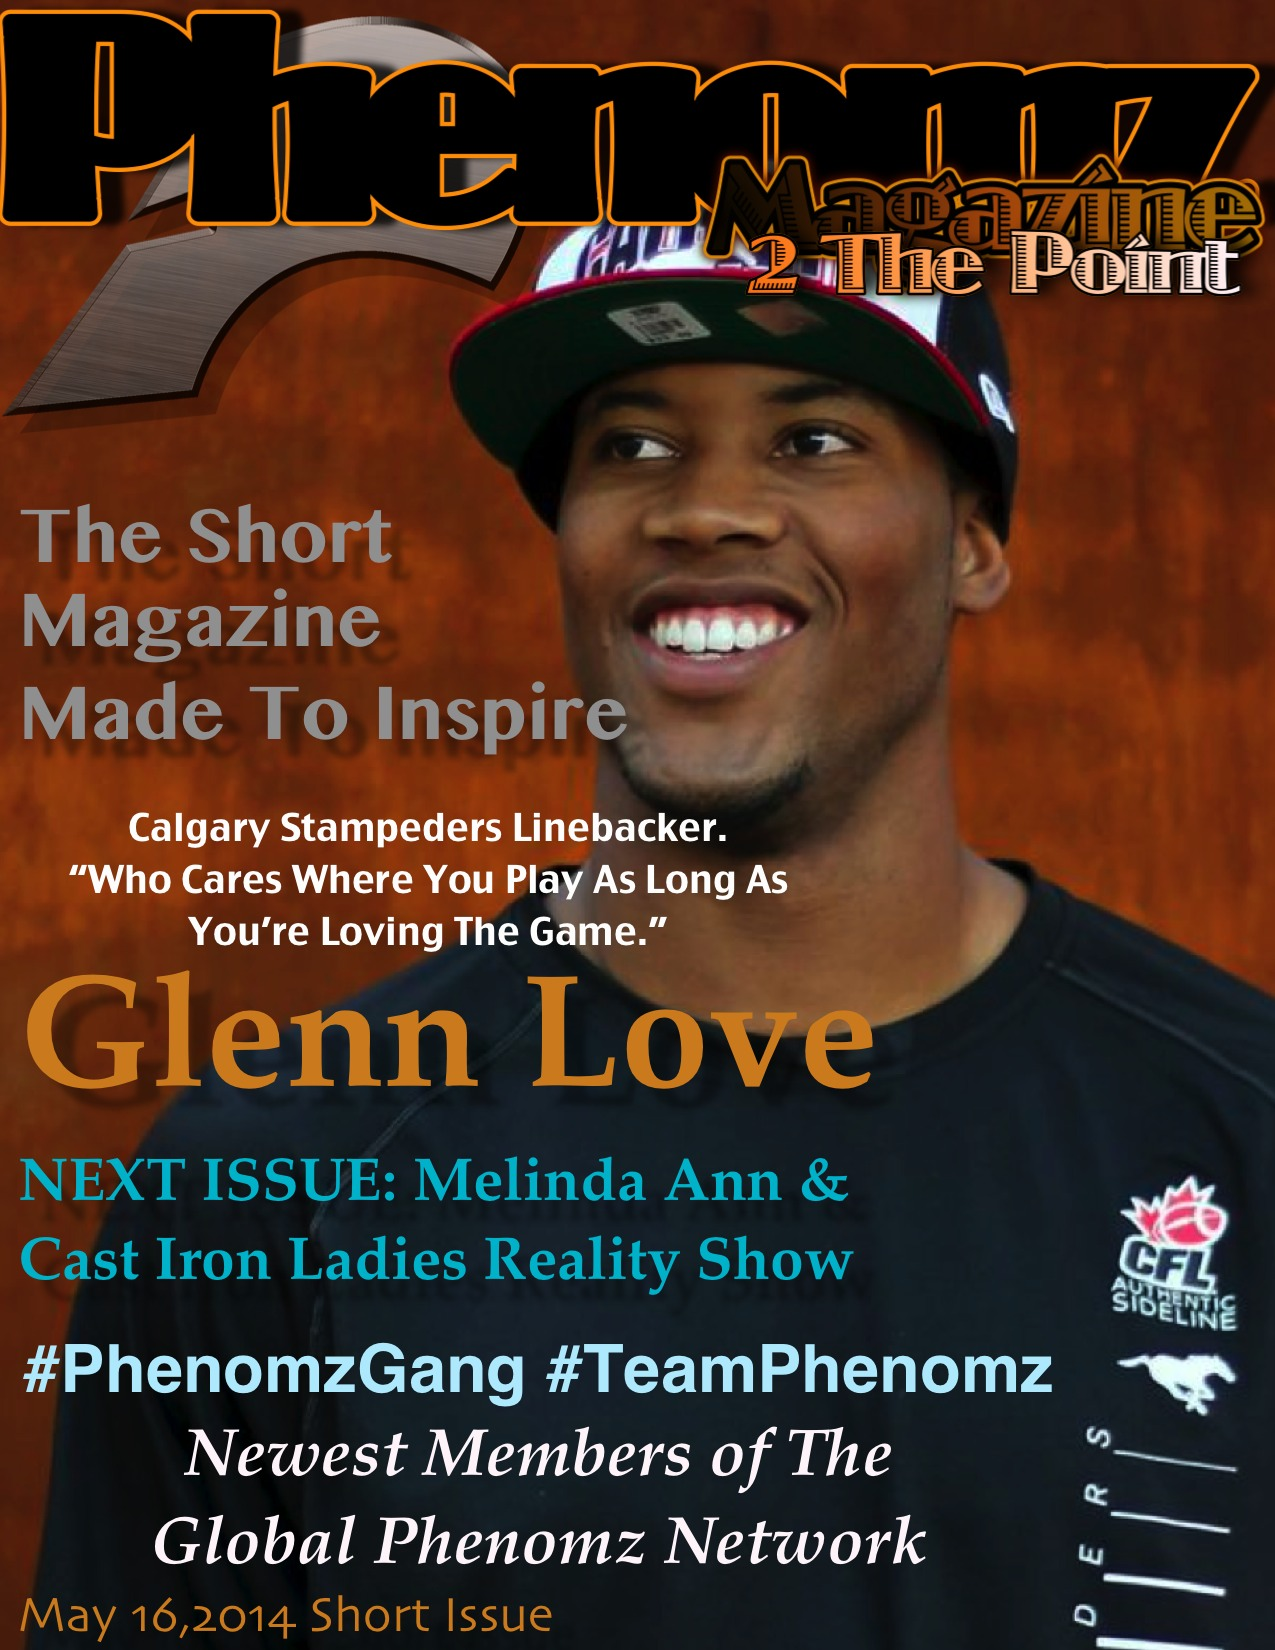 Glenn Love Jr. Featured on the Cover of Phenomz May Edition